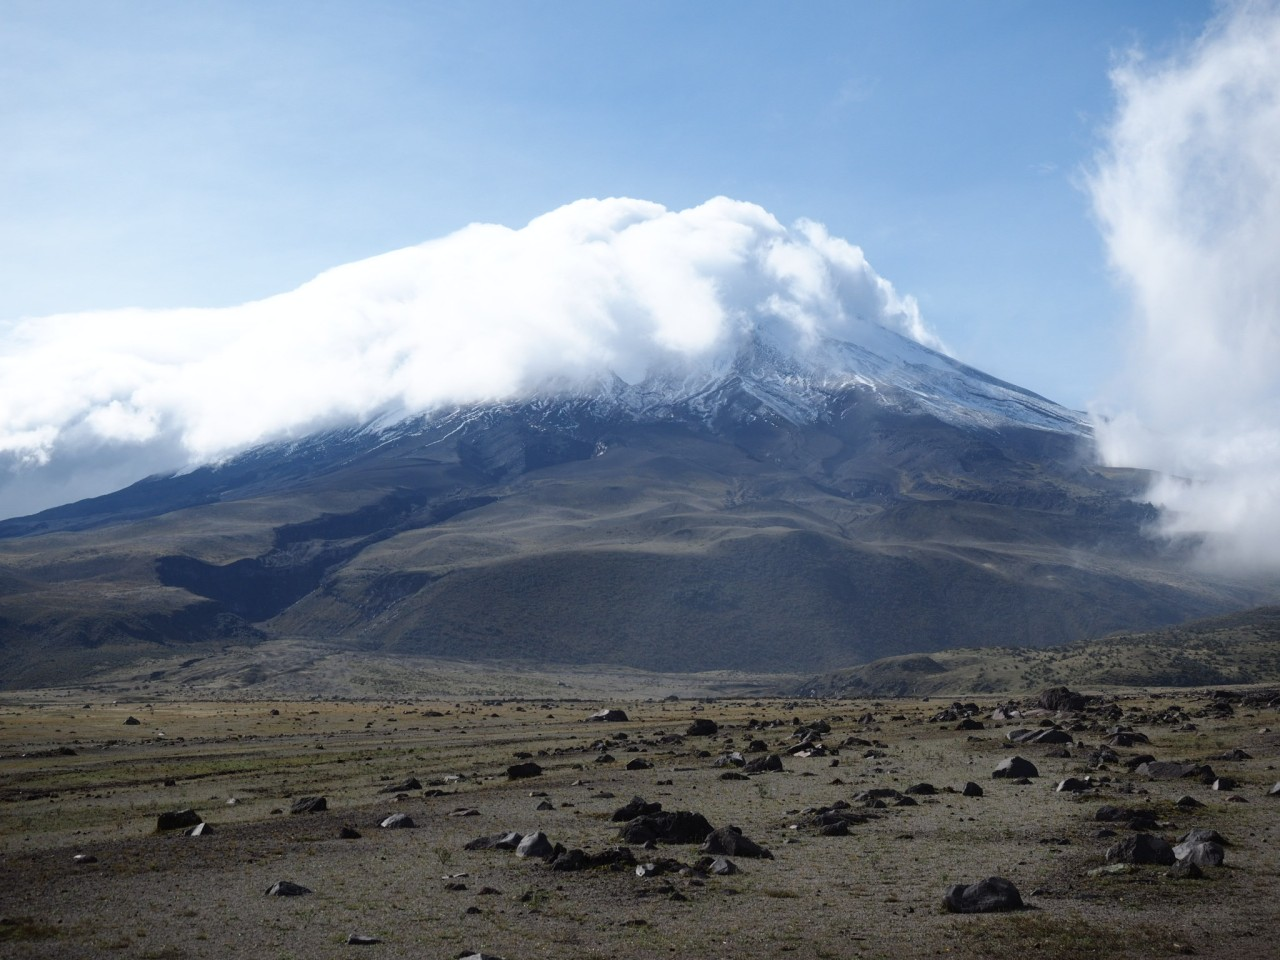 From sea level to 5,000 metres: Quito to Cotopaxi